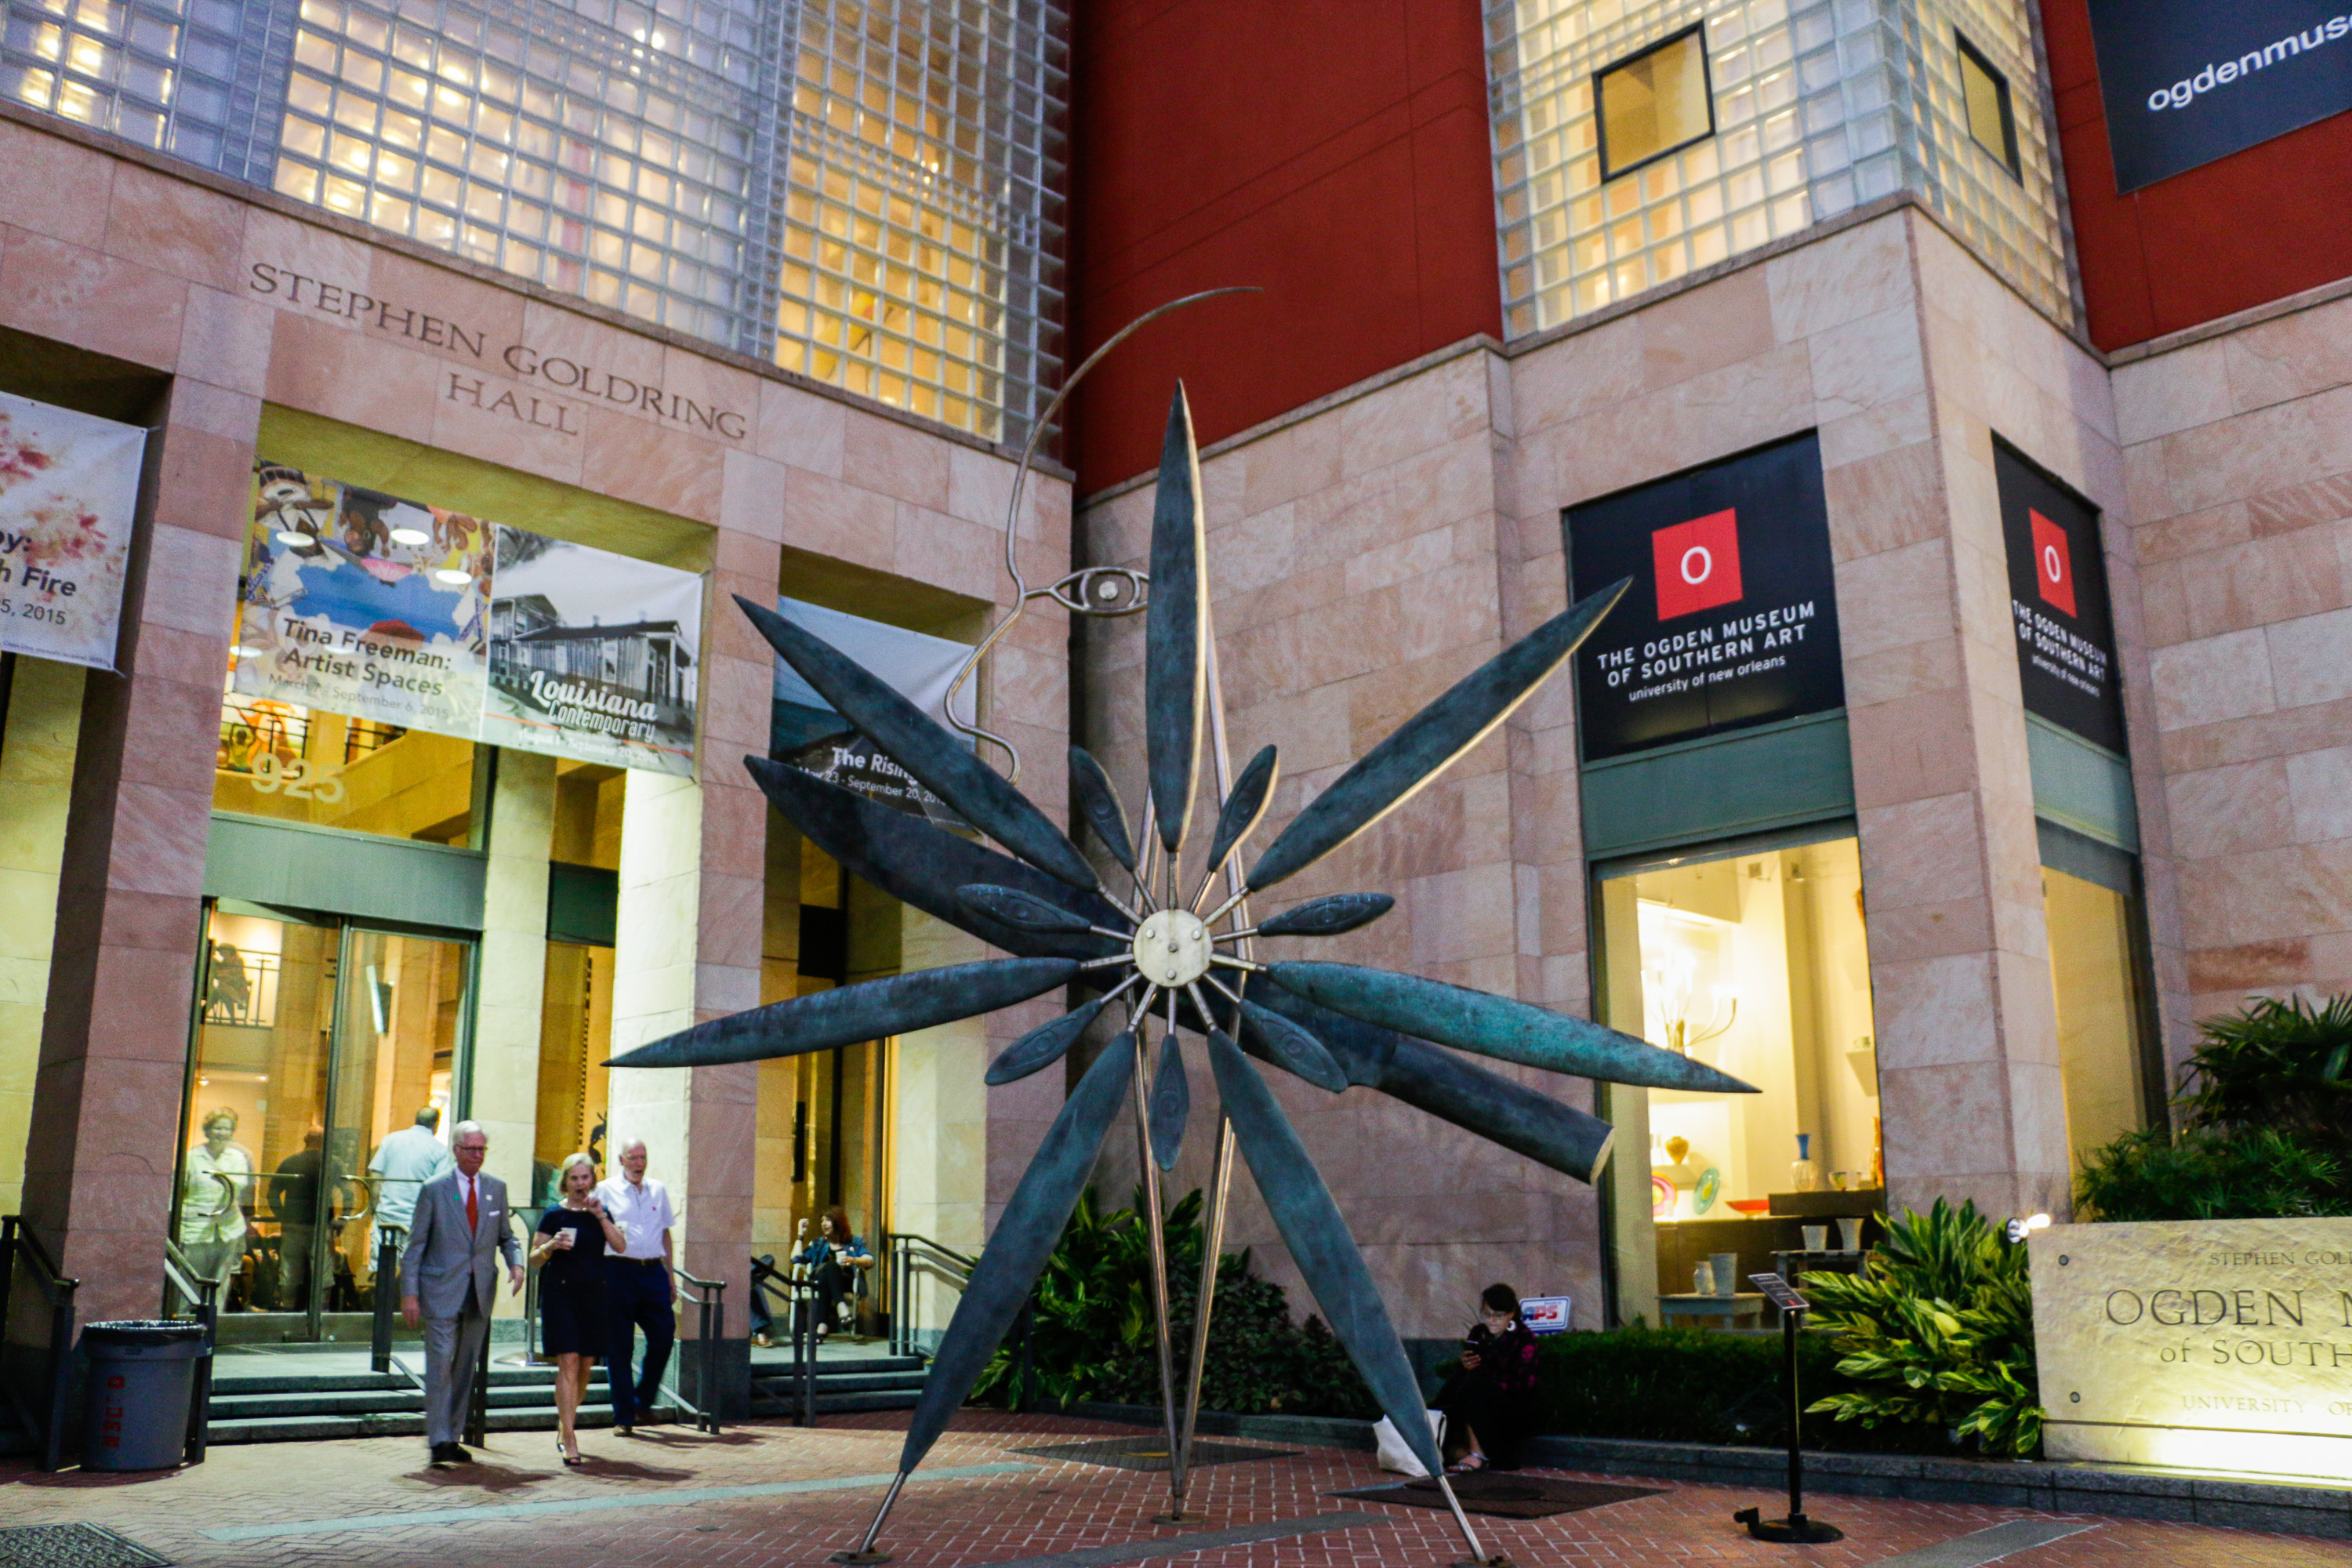 post-2-2ogden-museum-of-southern-art-by-paul-broussard2